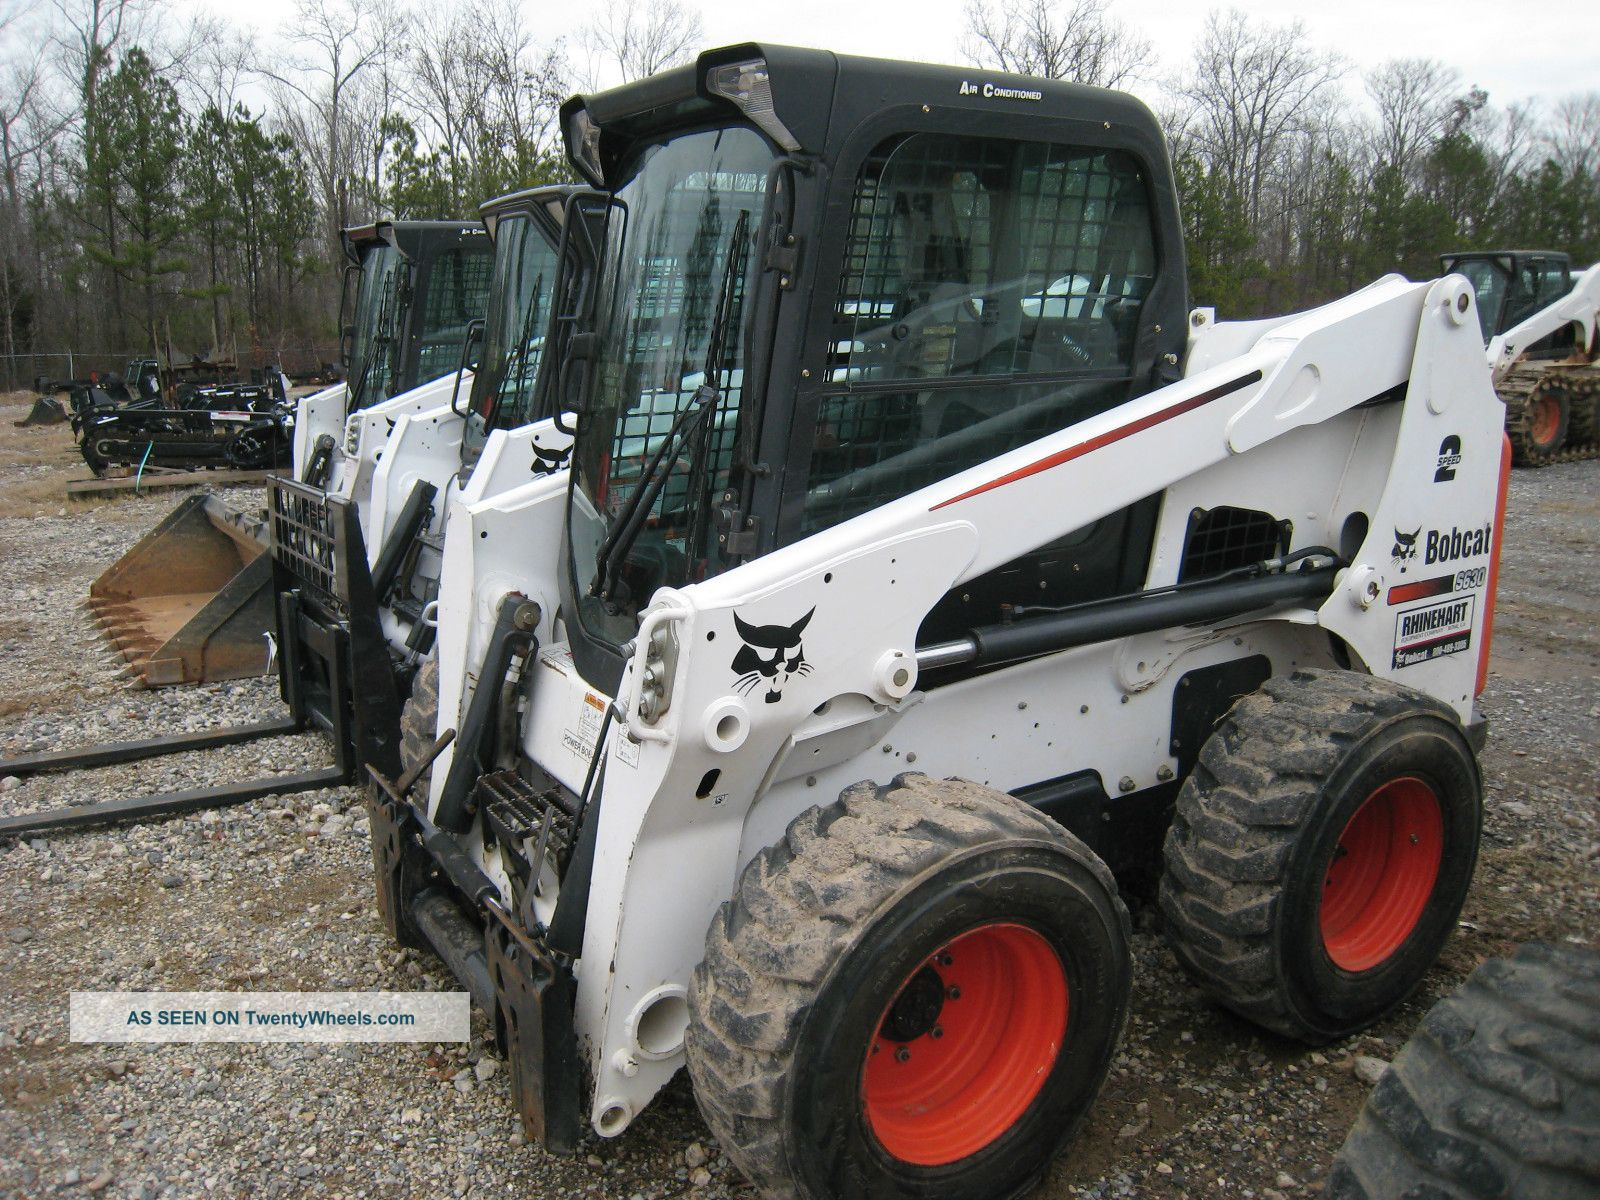 Bobcat Skid Steer Paint : Bobcat s hours great paint tires cab